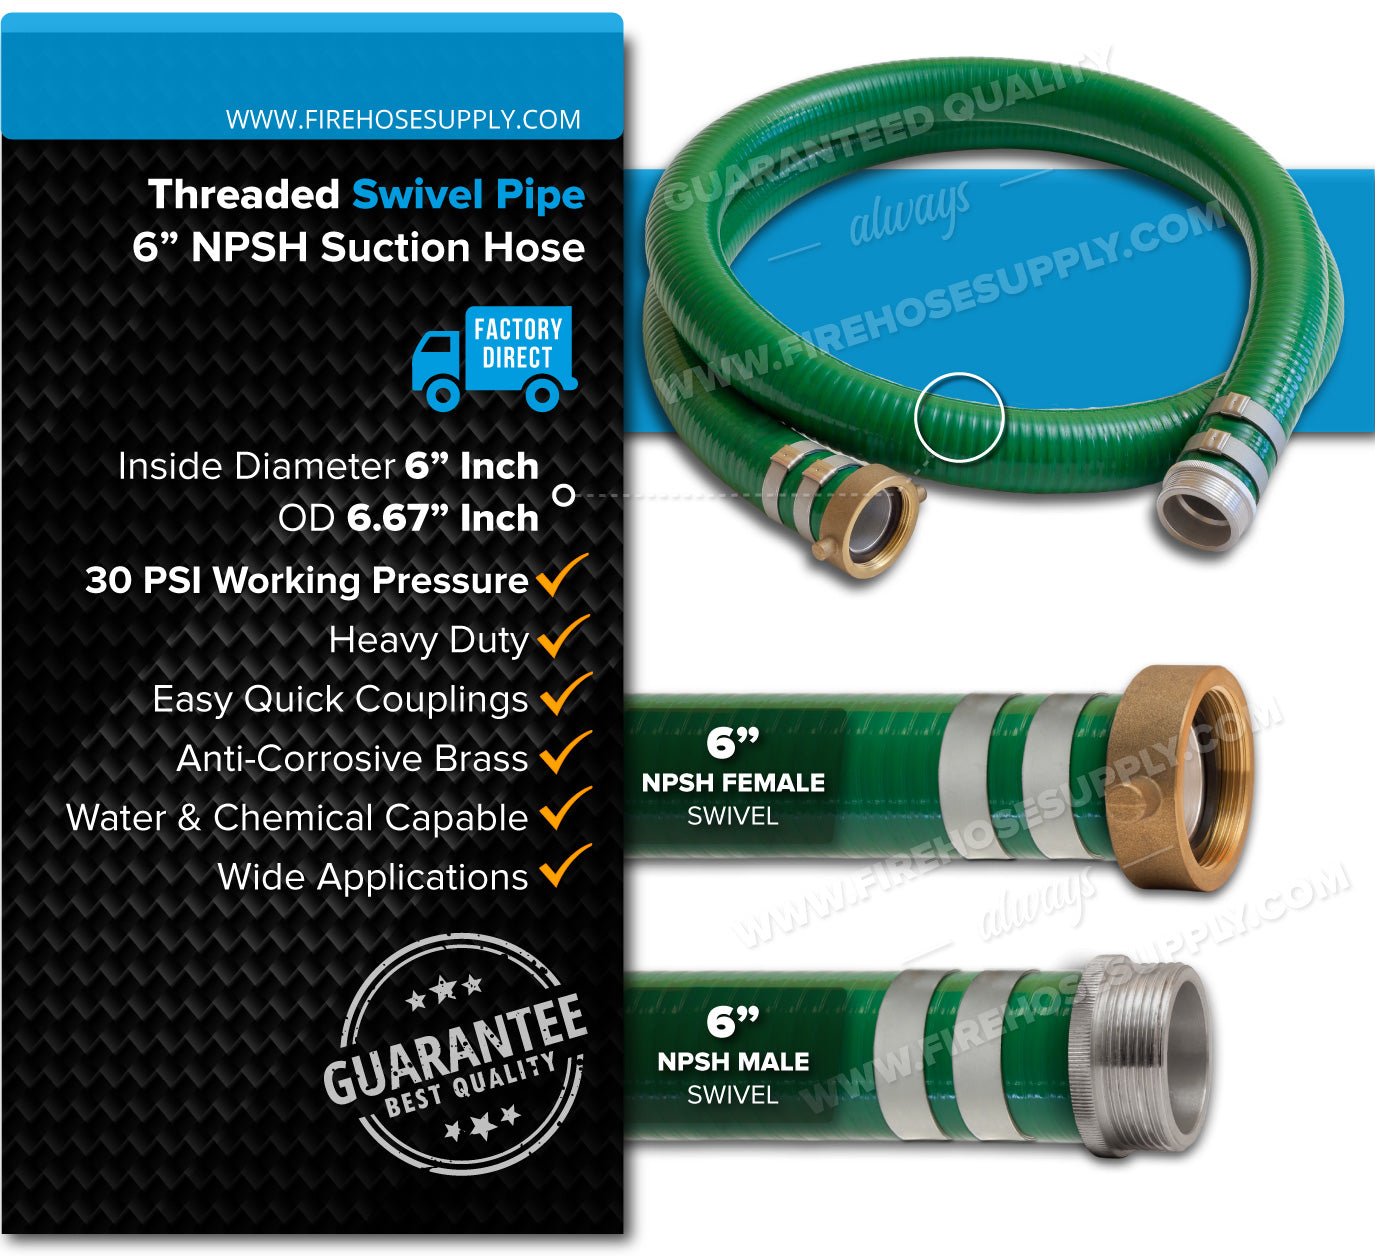 6 Inch Threaded Female x Male Green Suction Hose Overview